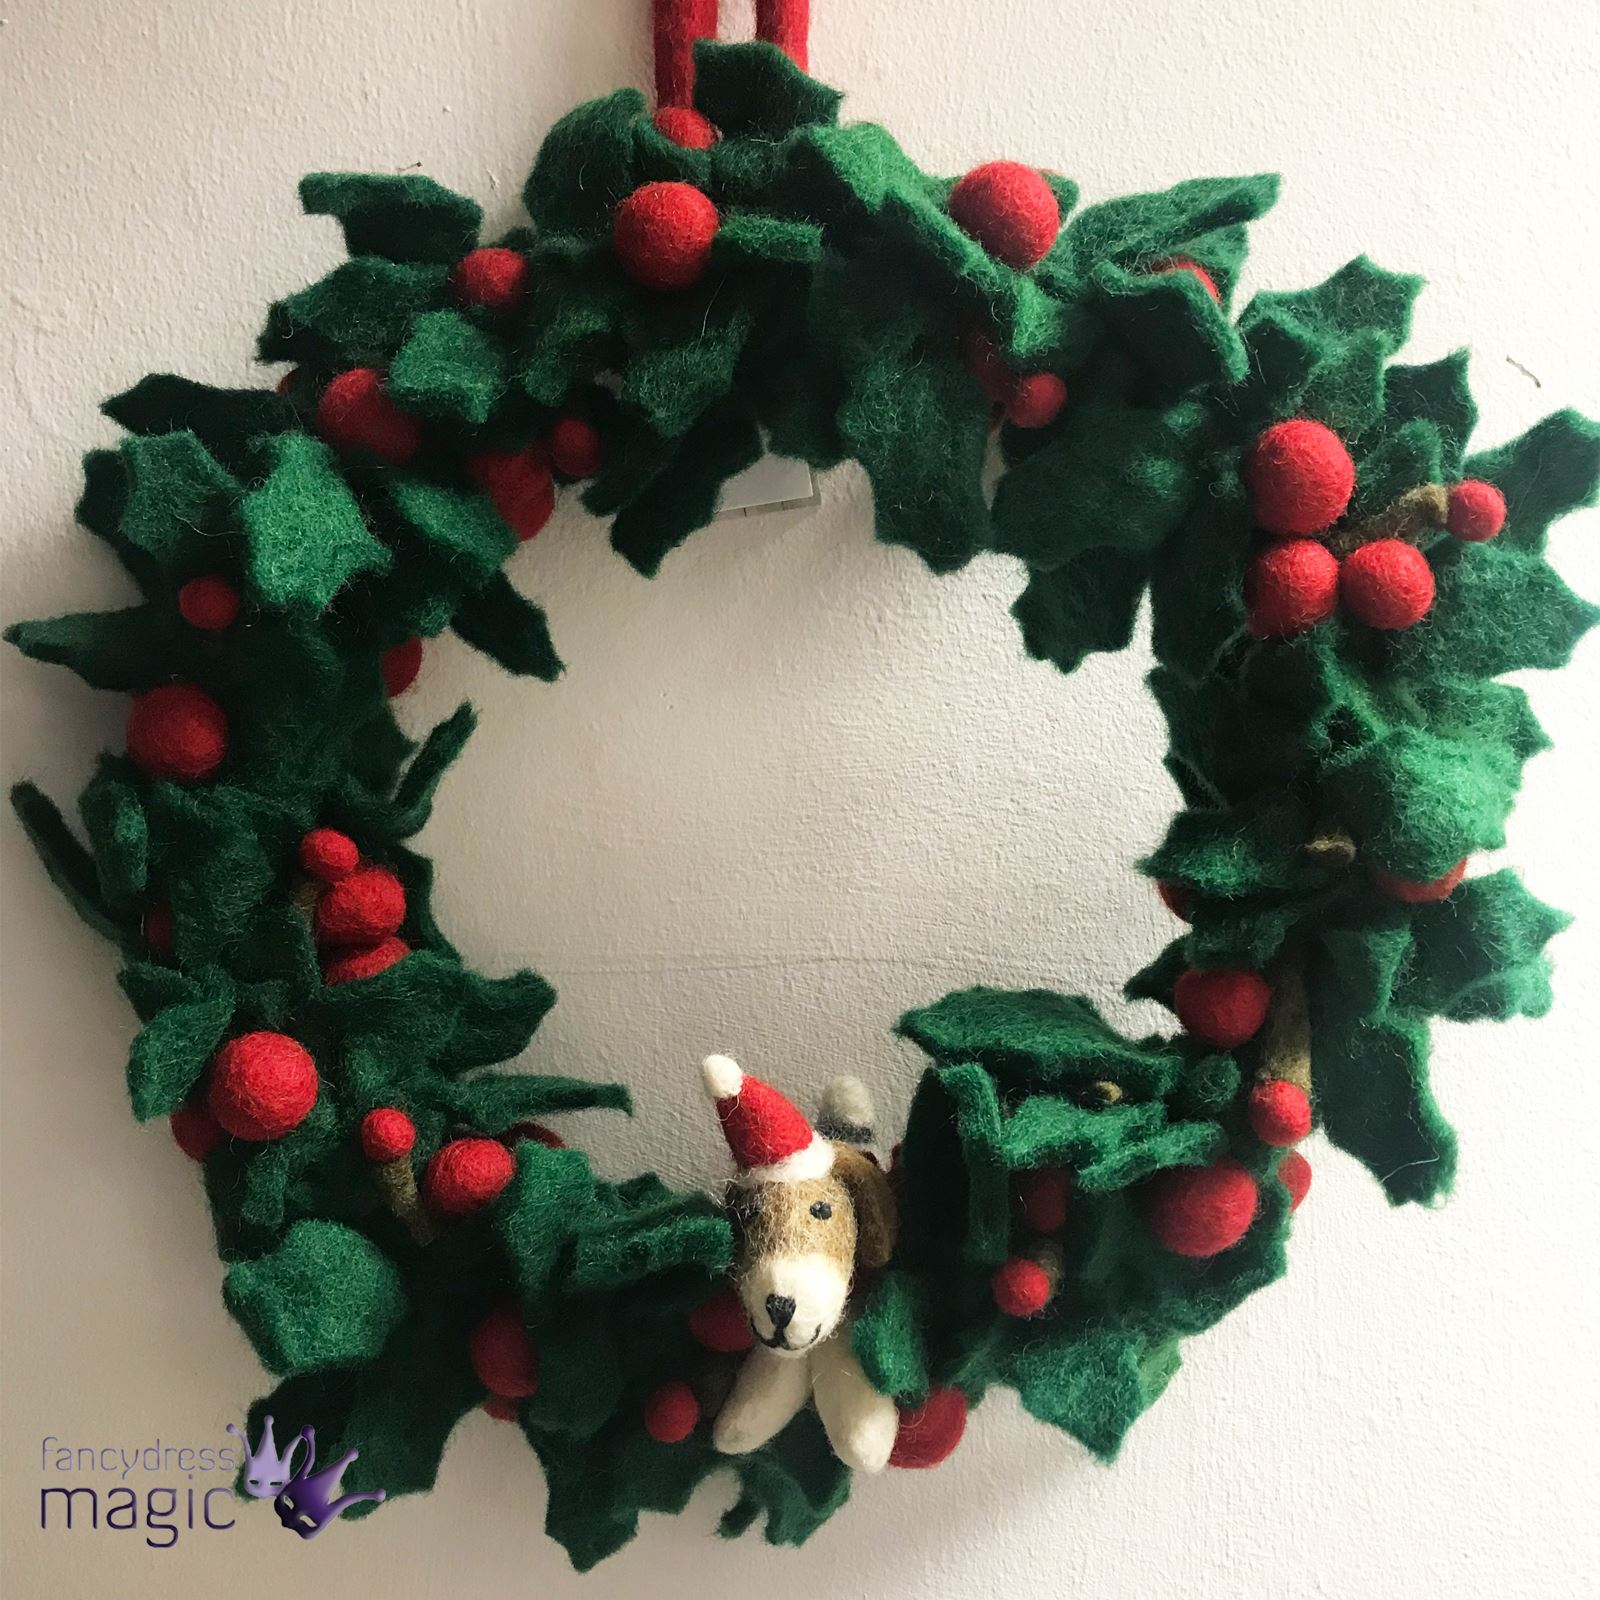 felt fairtrade large holly mistletoe dog robin wreath